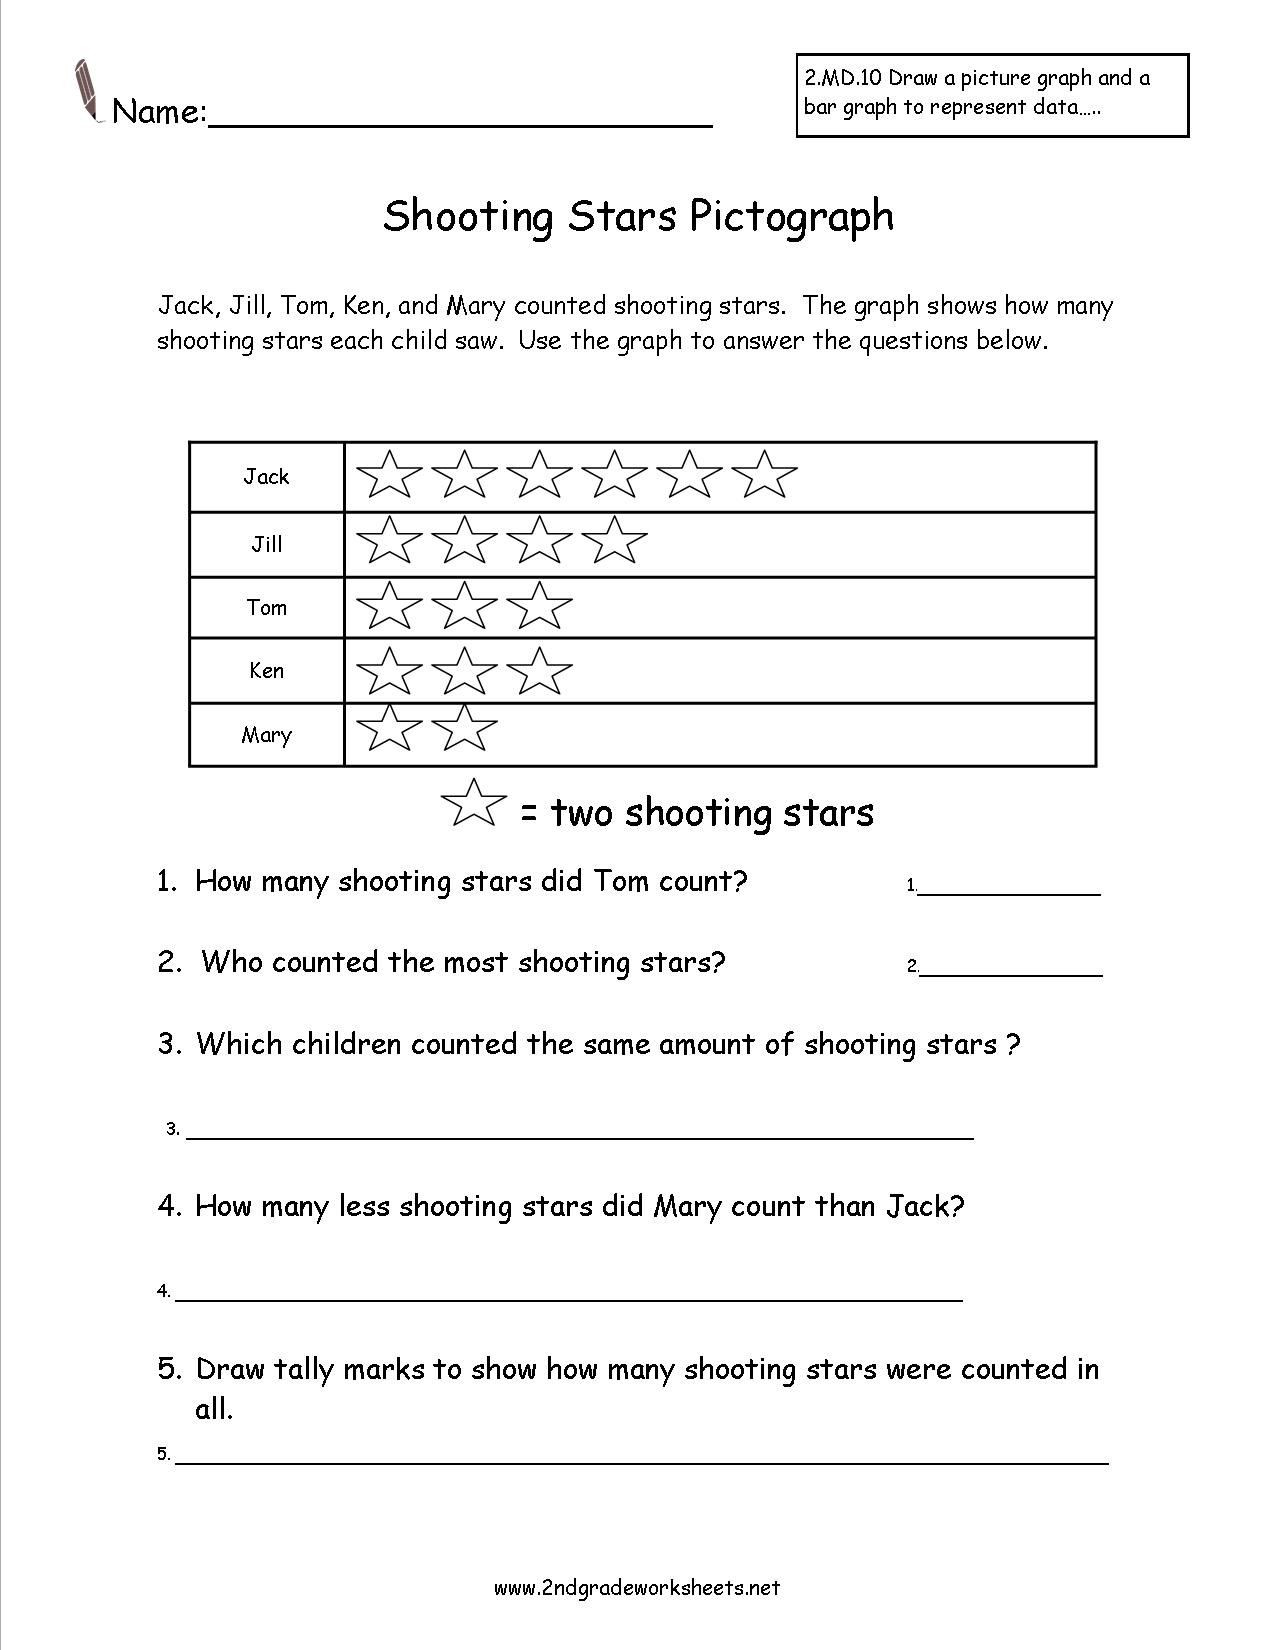 Pictograph Worksheets 3rd Grade Shooting Stars Pictograph Worksheet